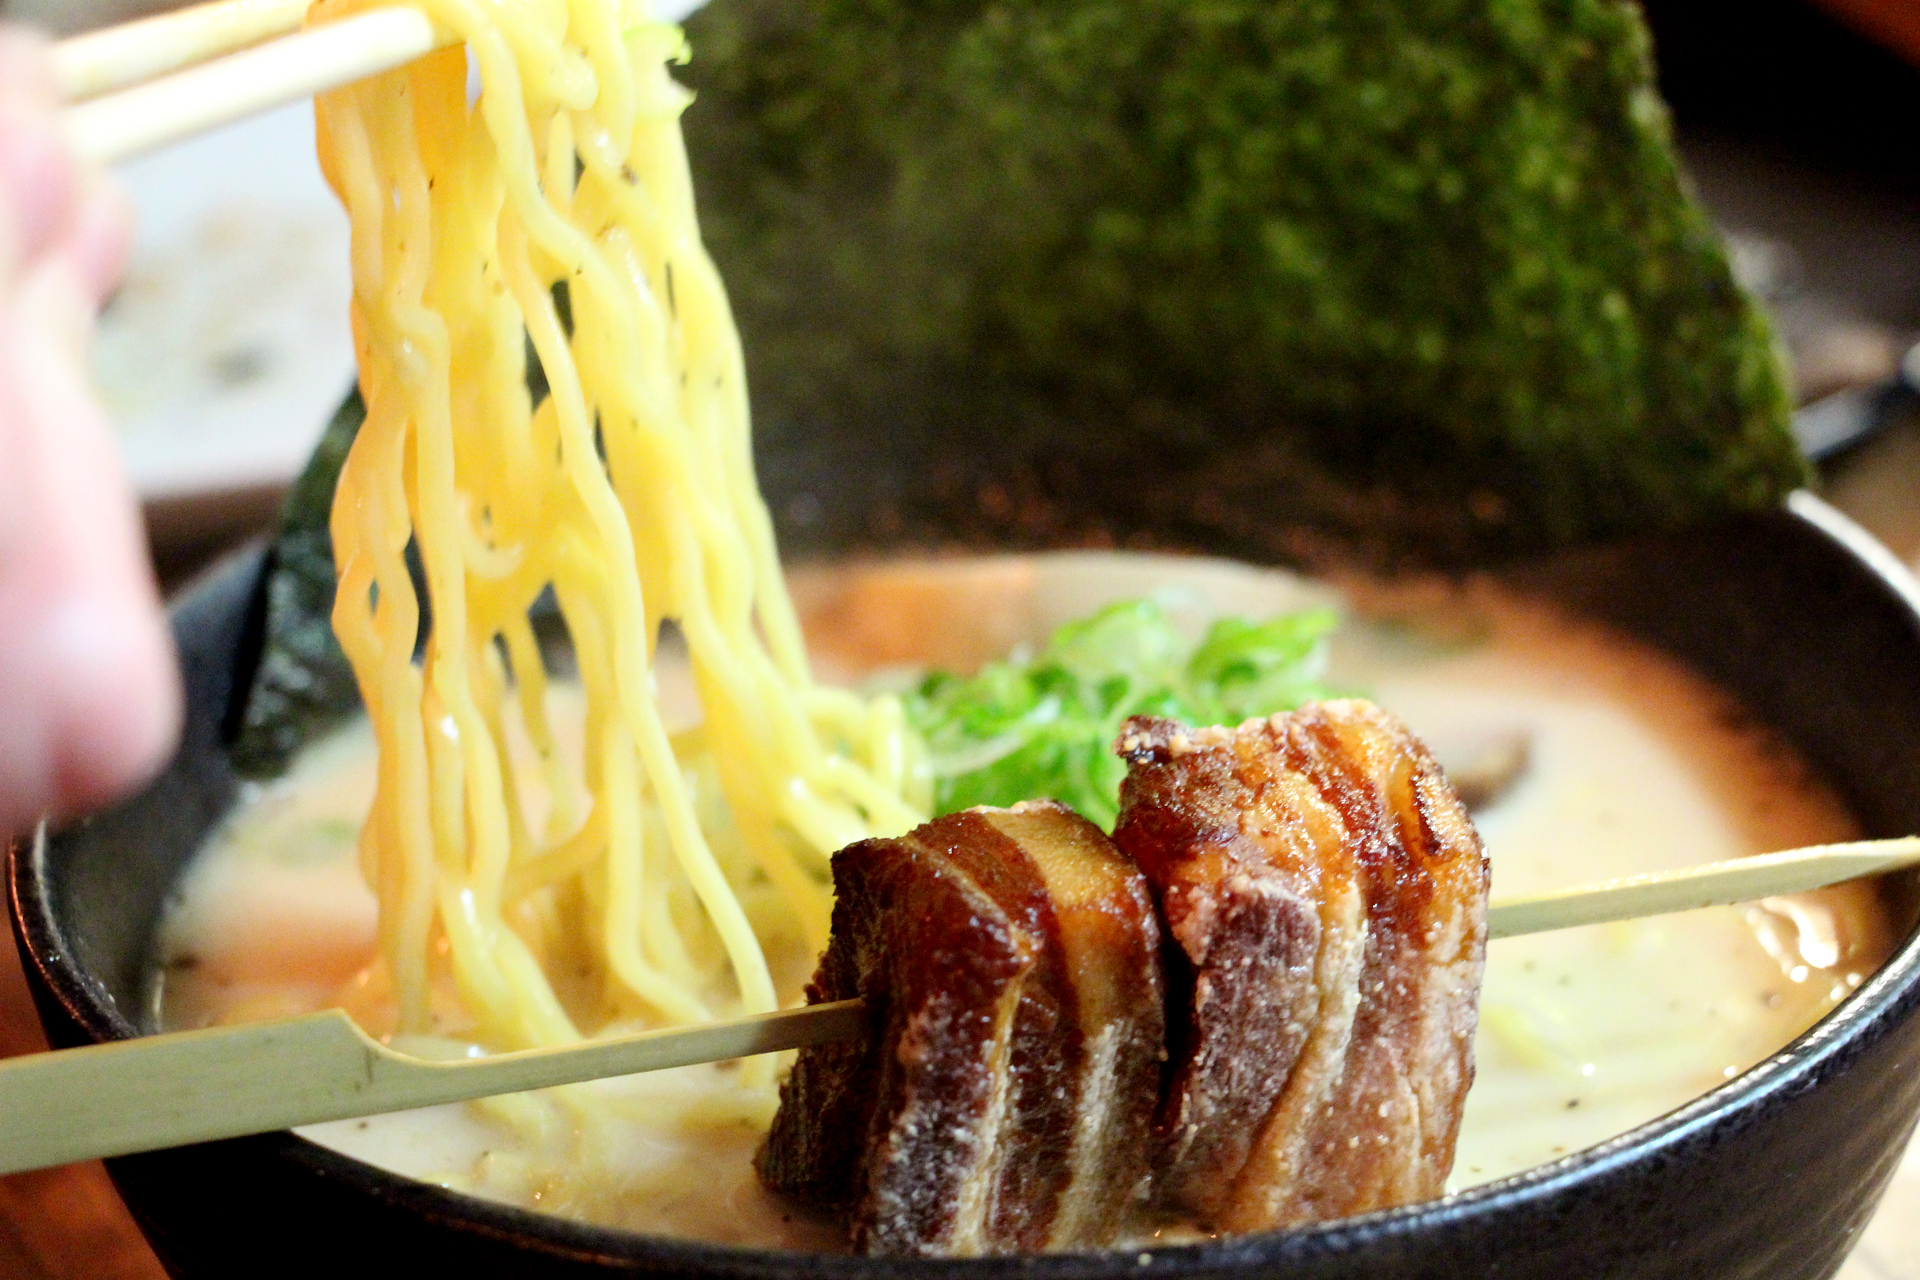 Izakaya Sozai's ramen tonkotsu bowl with fried braised pork belly.